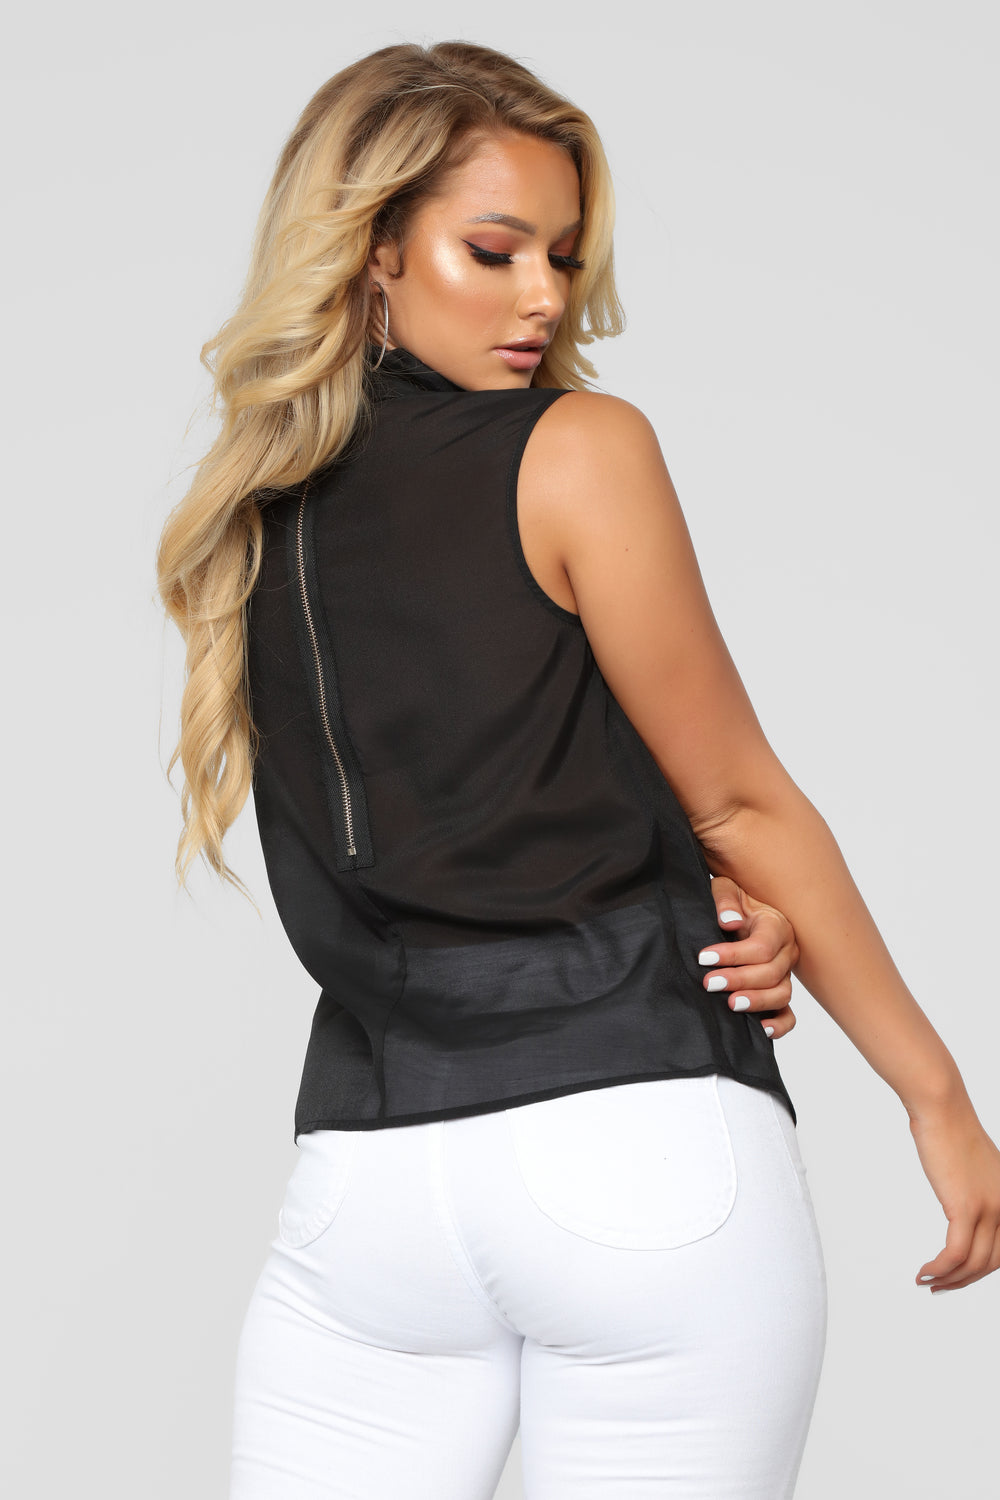 Out Of Work Blouse - Black